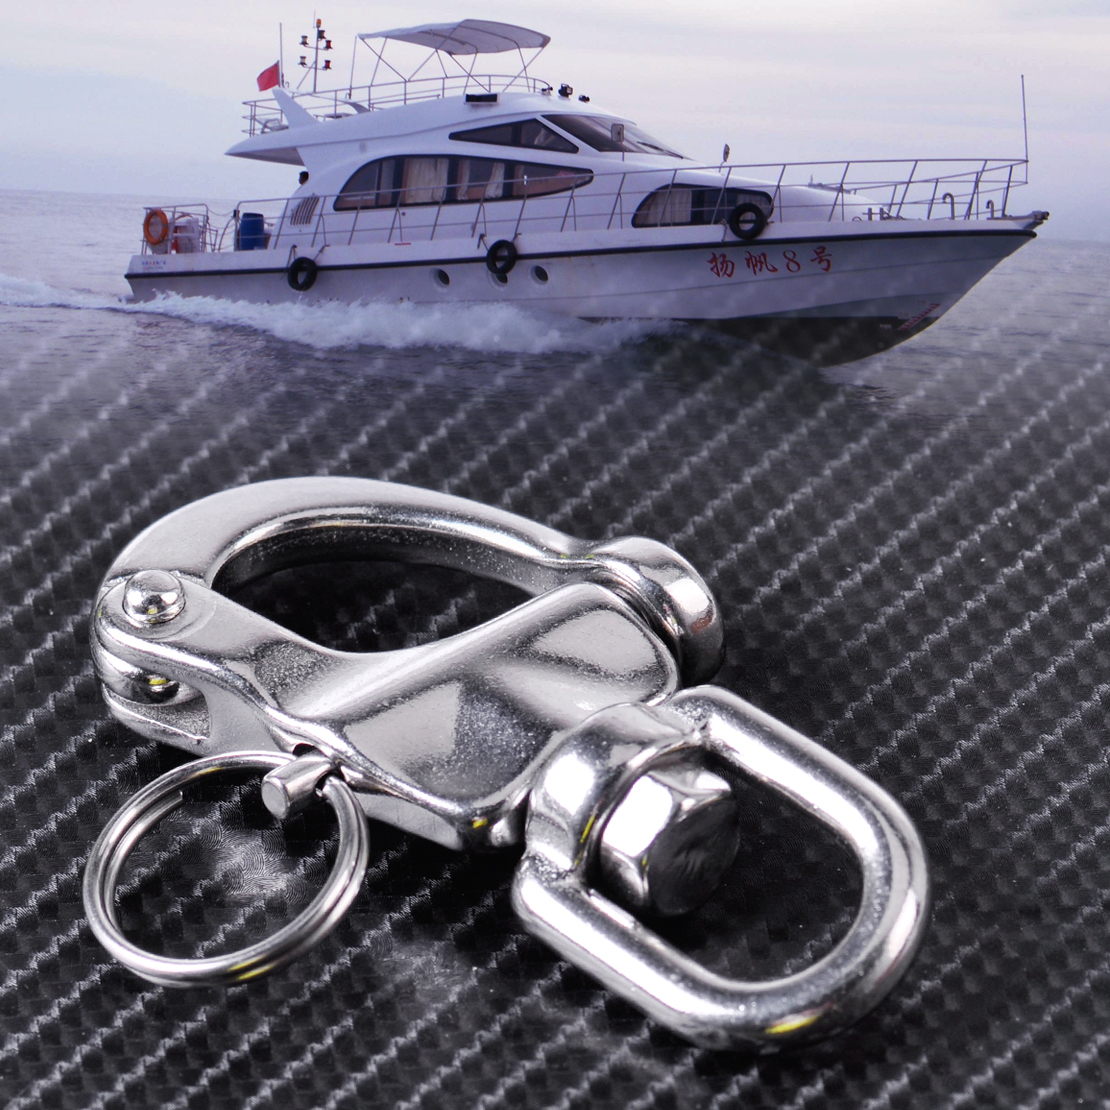 New Stainless Steel Heavy Duty Snap Shackle D Ring Swivel Bail Marine Boat Yacht Sailing Hardware